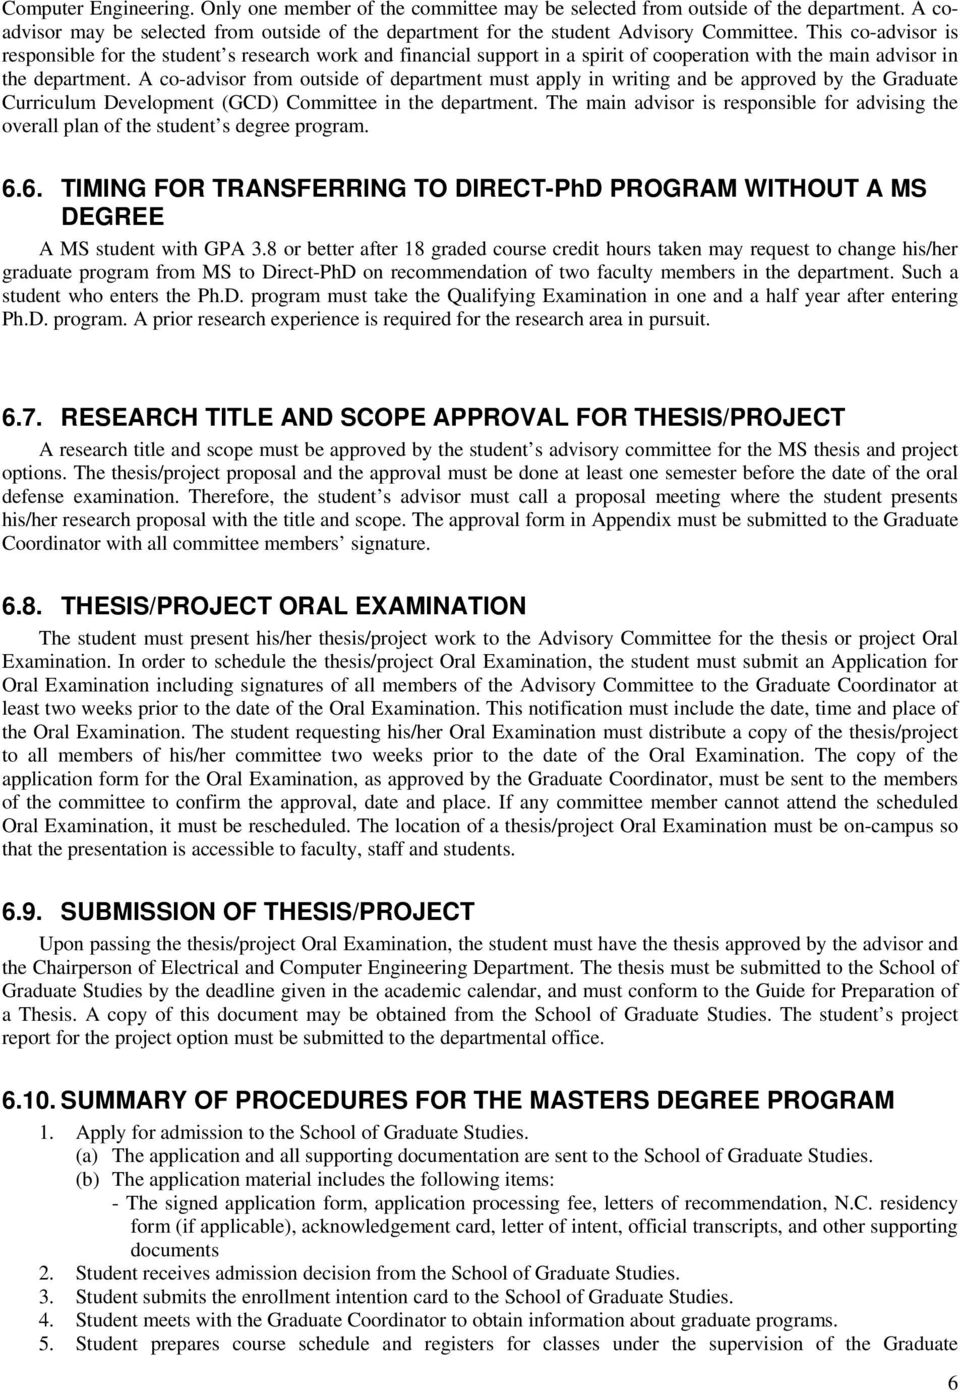 A co-advisor from outside of department must apply in writing and be approved by the Graduate Curriculum Development (GCD) Committee in the department.